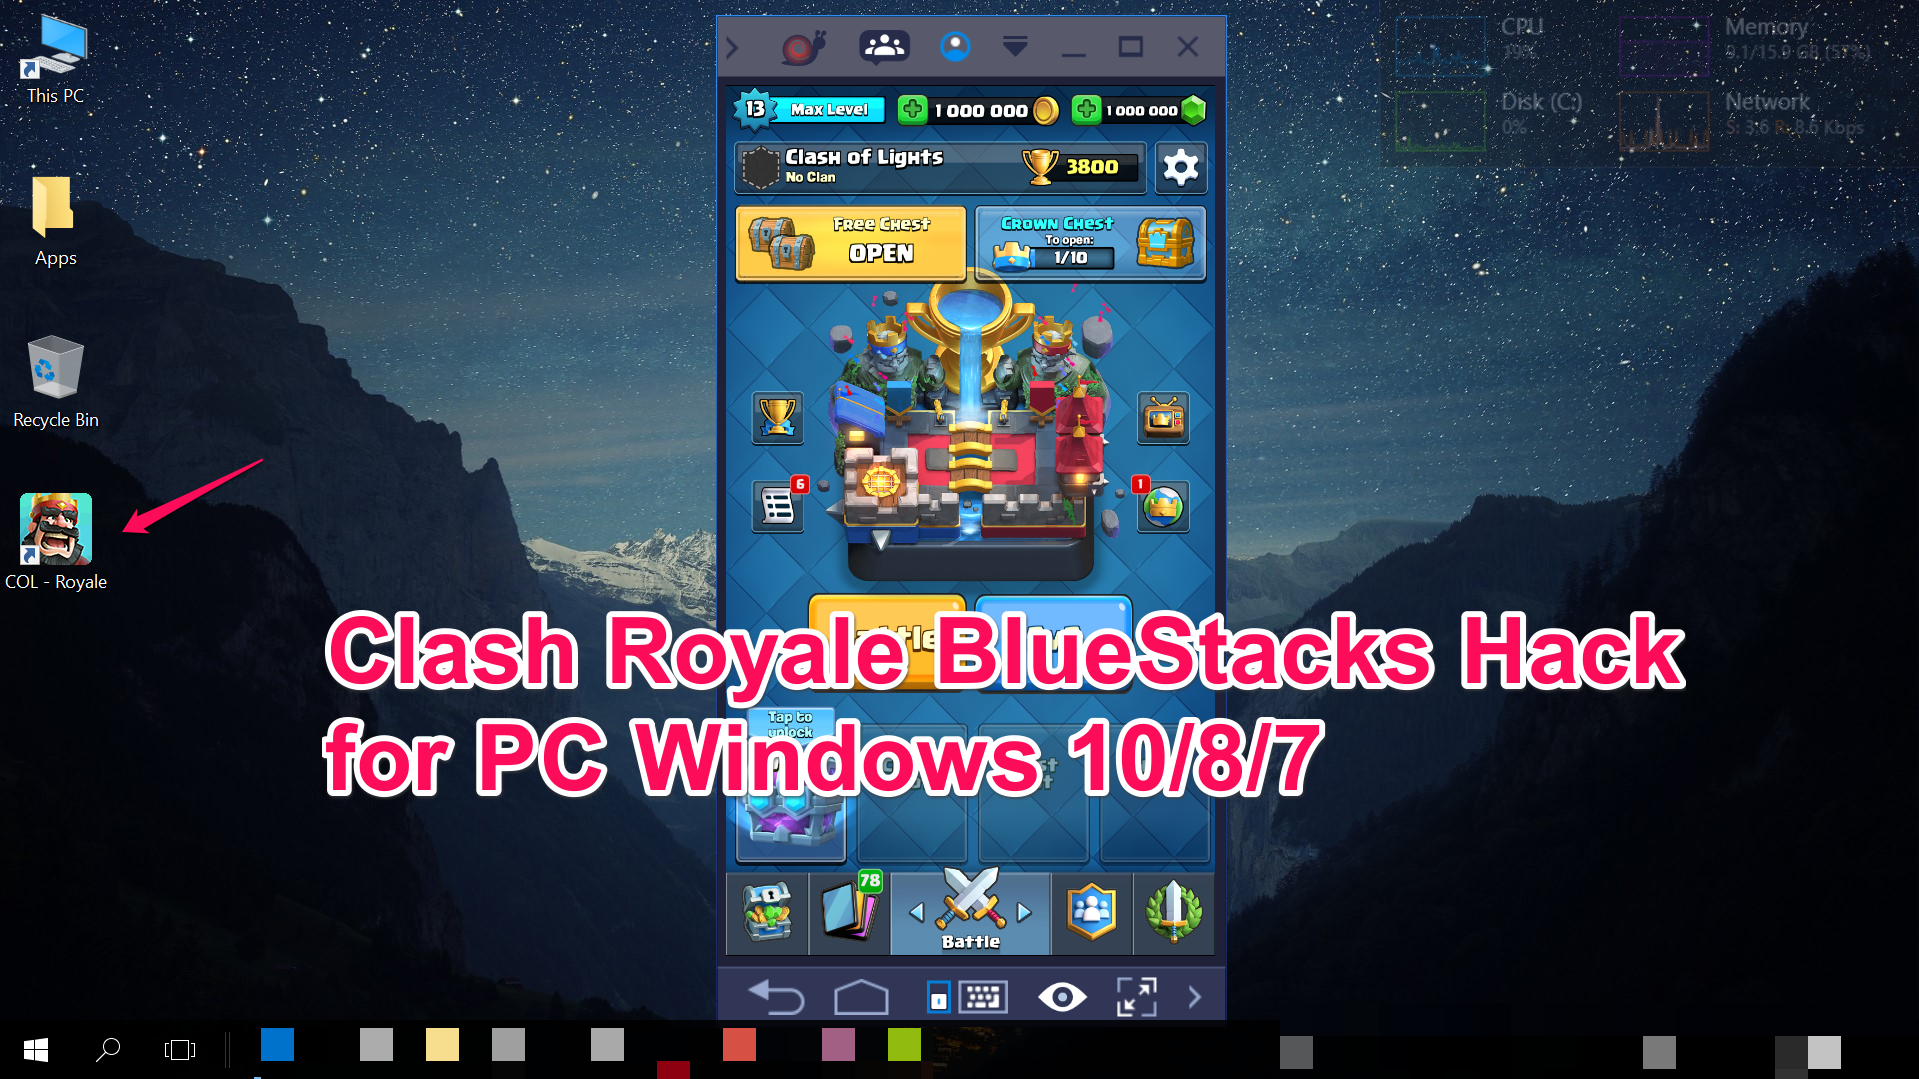 Clash-Royale-Bluestacks-PC-Hack-mod